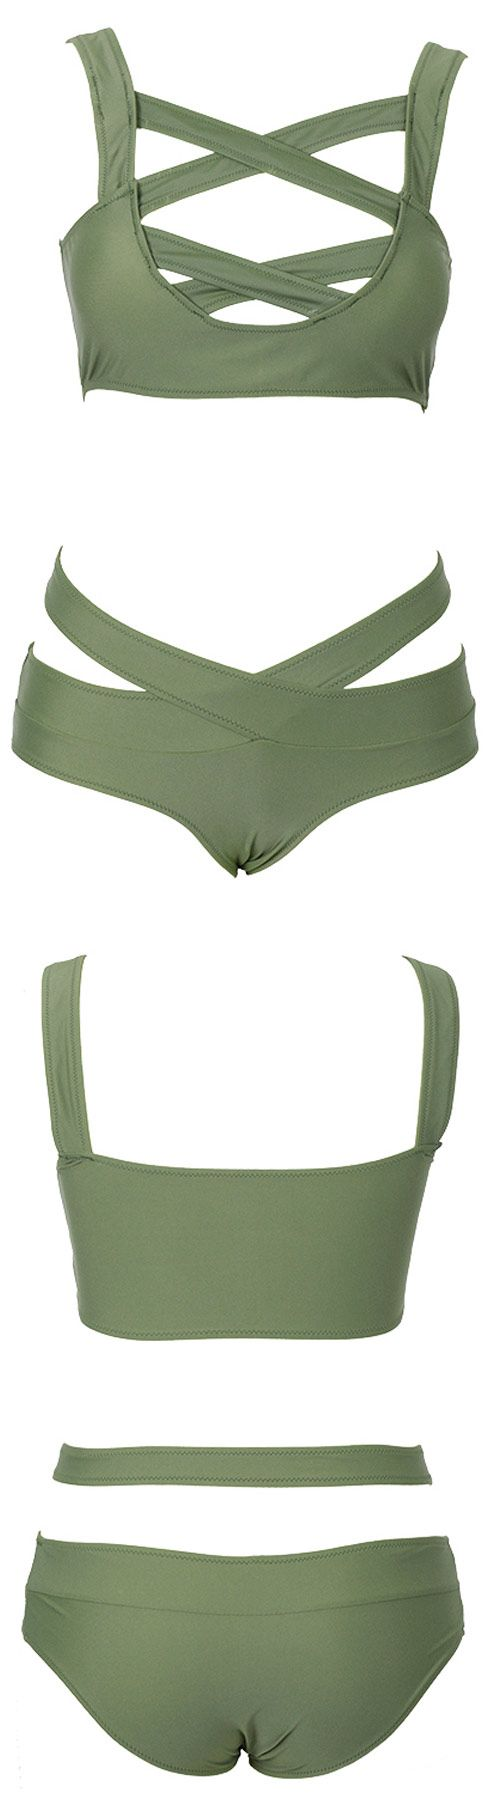 Dare to try something nontraditional? You better not miss this bikini. Olive green with front cross design make it special. Check this bikini at cupshe.com